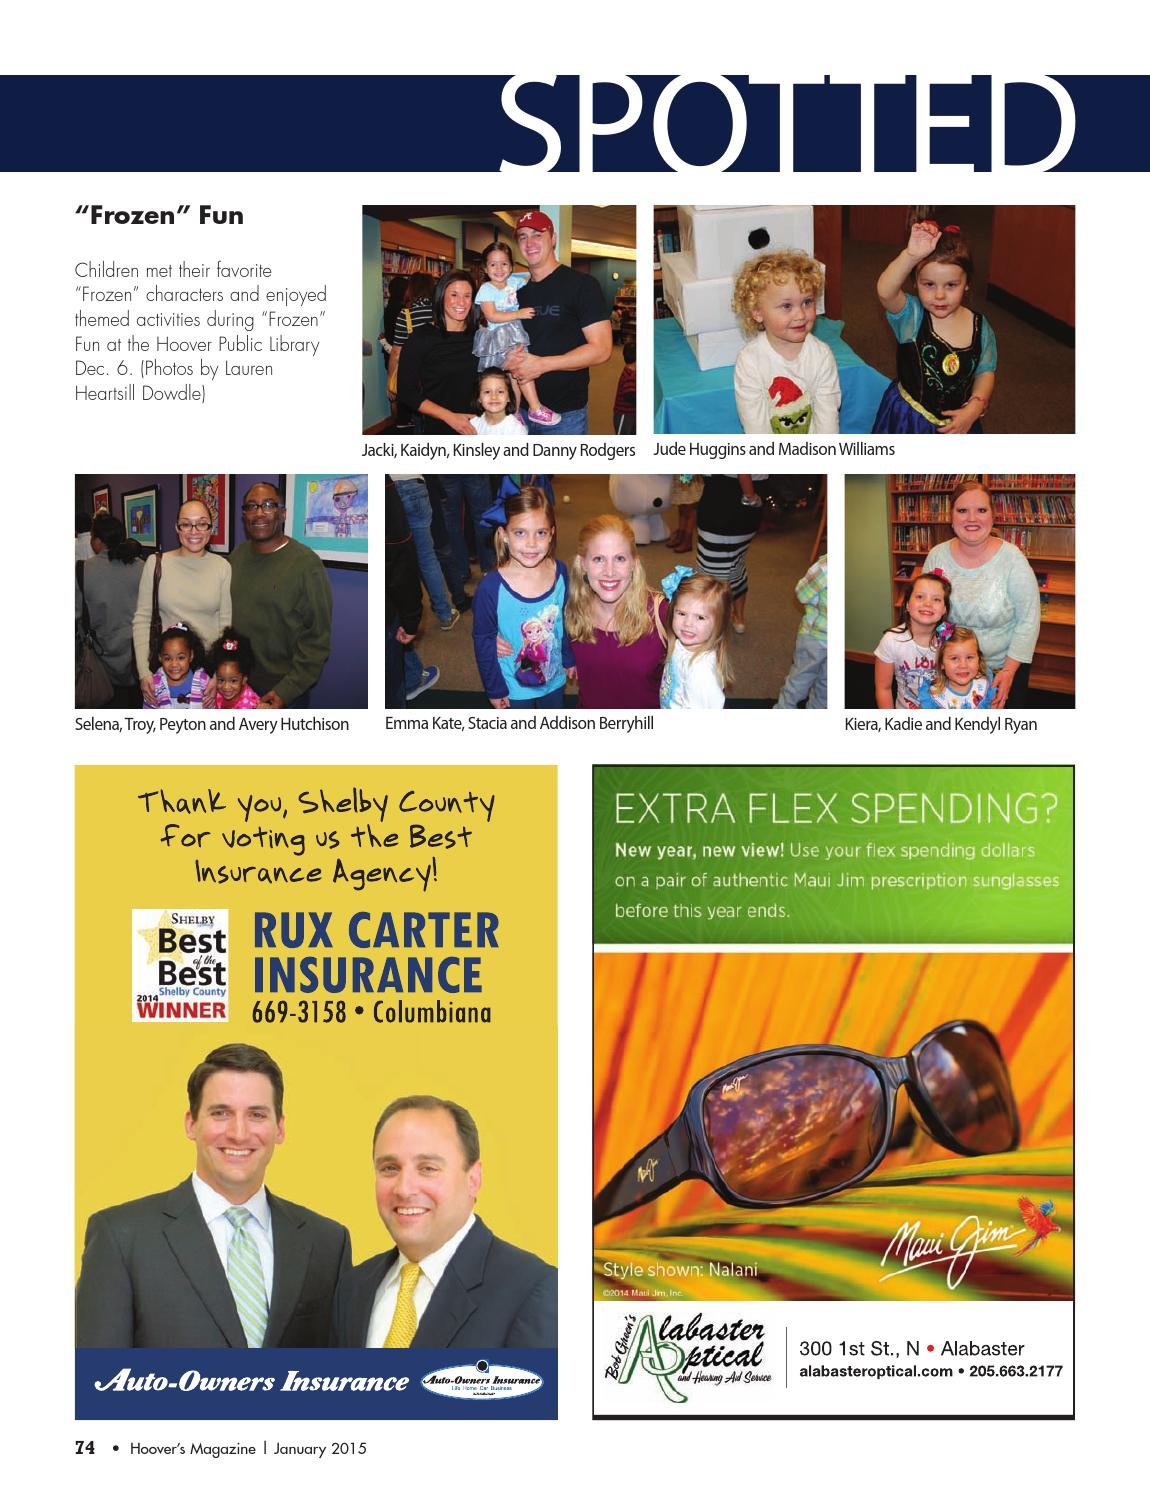 Hoover's Magazine January 2015 by Shelby County Newspapers